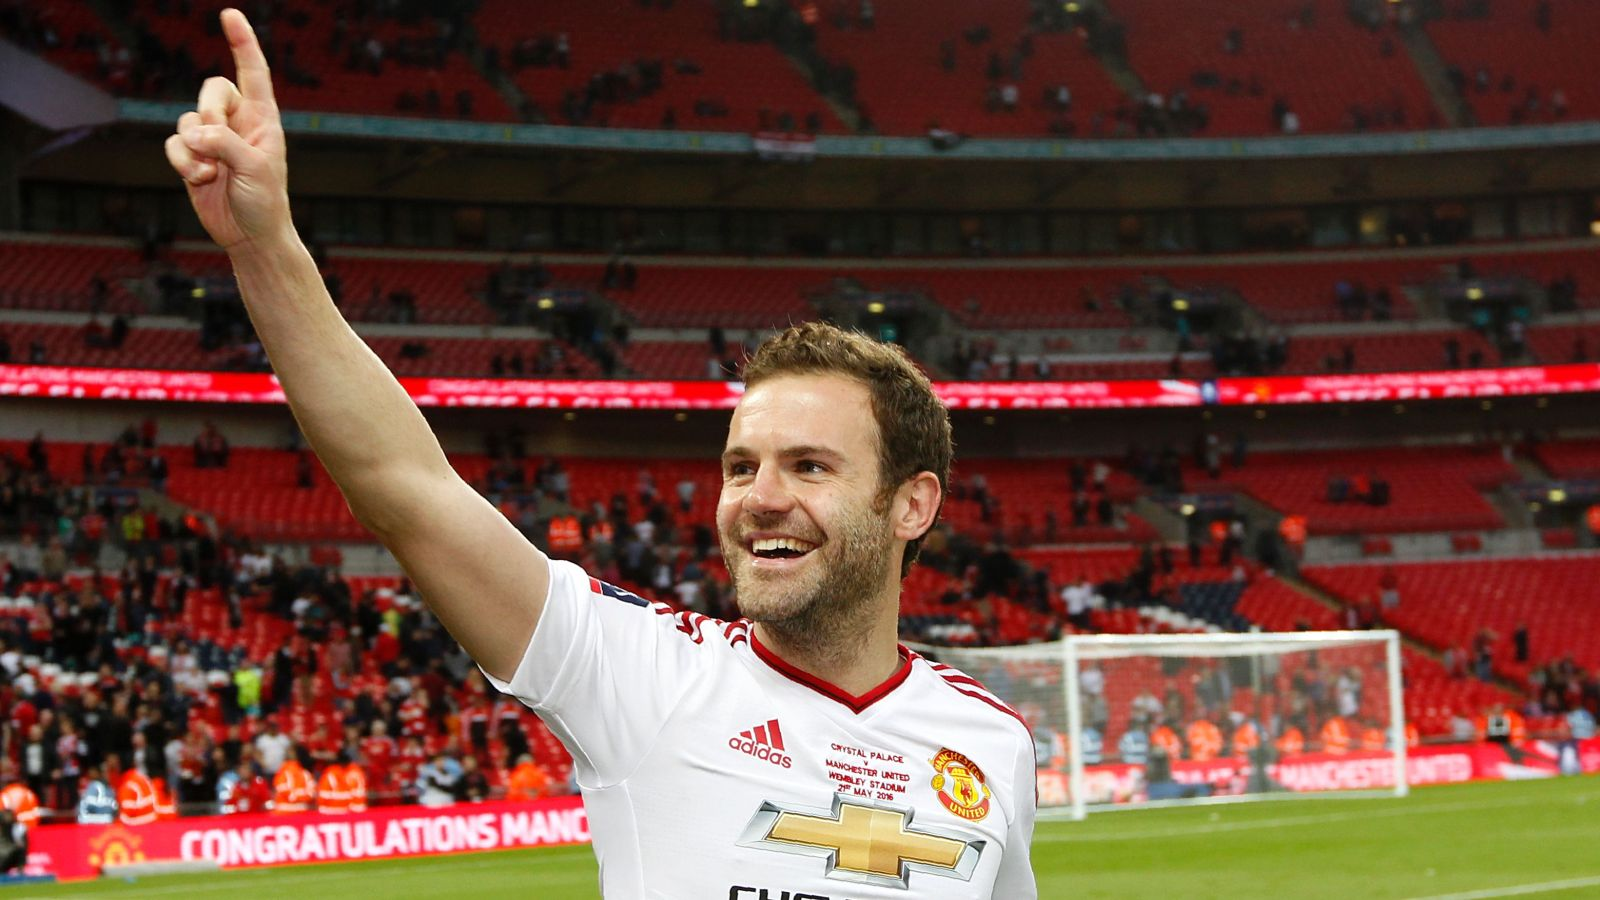 Barcelona consider making a bid for United, Spain midfielder Mata